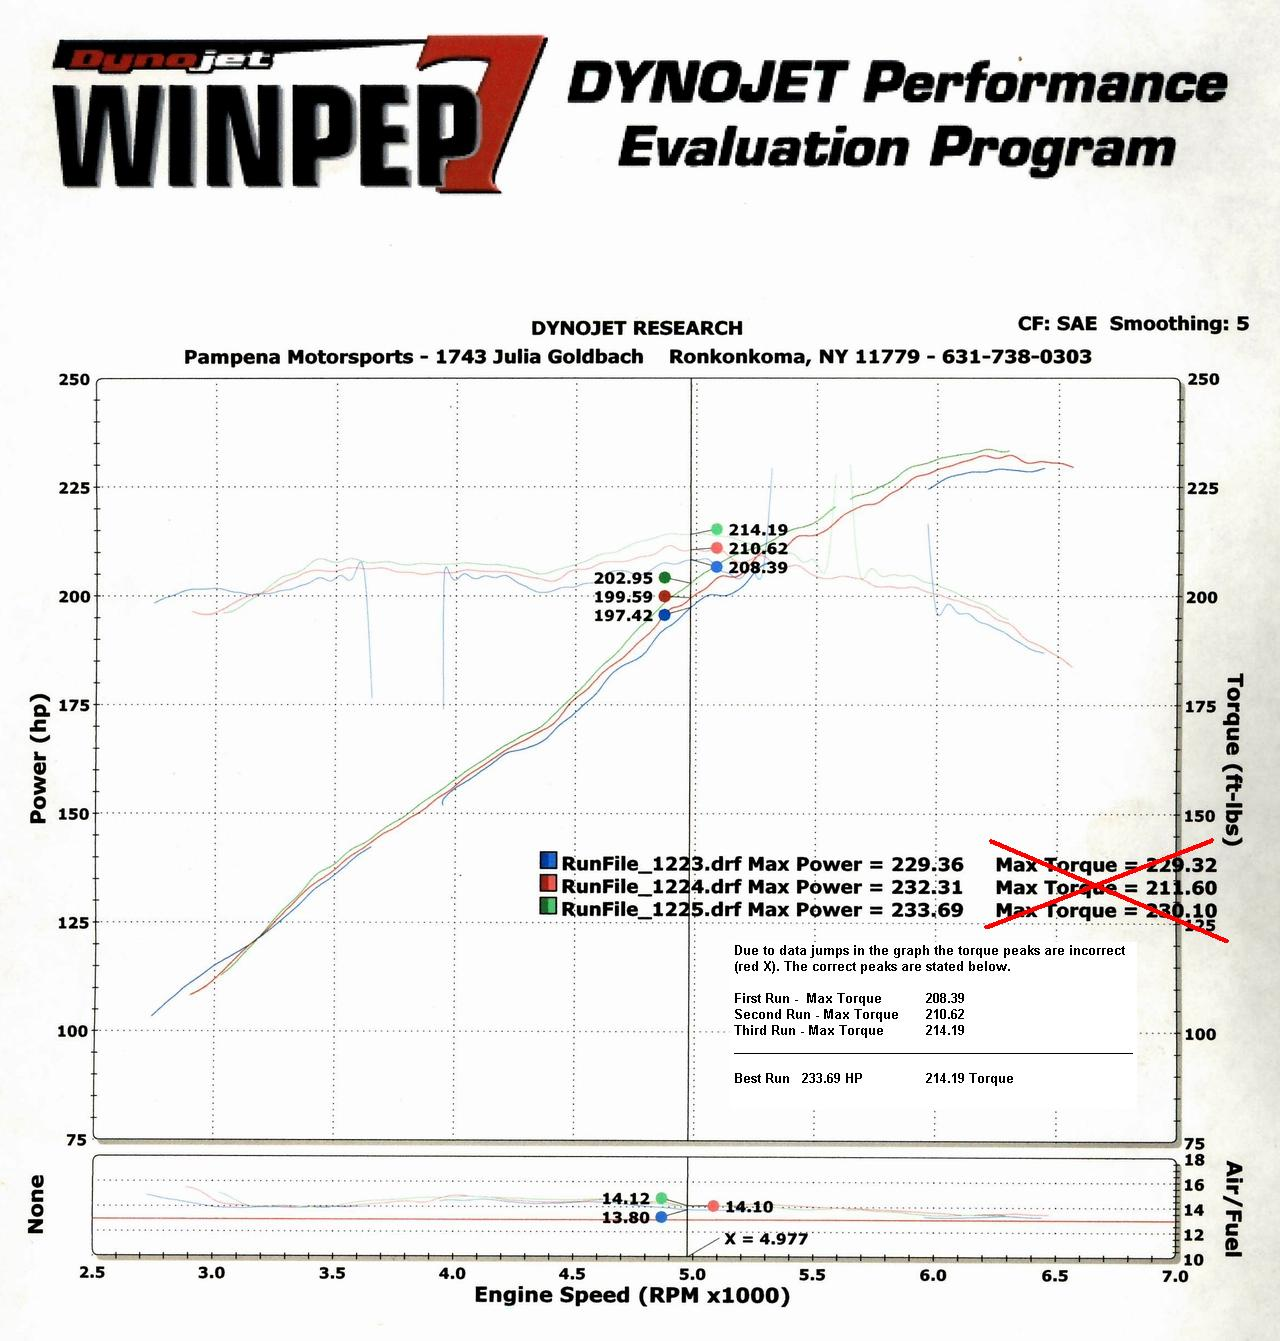 2003 Infiniti G35 Coupe >> My first dyno - bonestock 2005 g35 6mt coupe - G35Driver - Infiniti G35 & G37 Forum Discussion